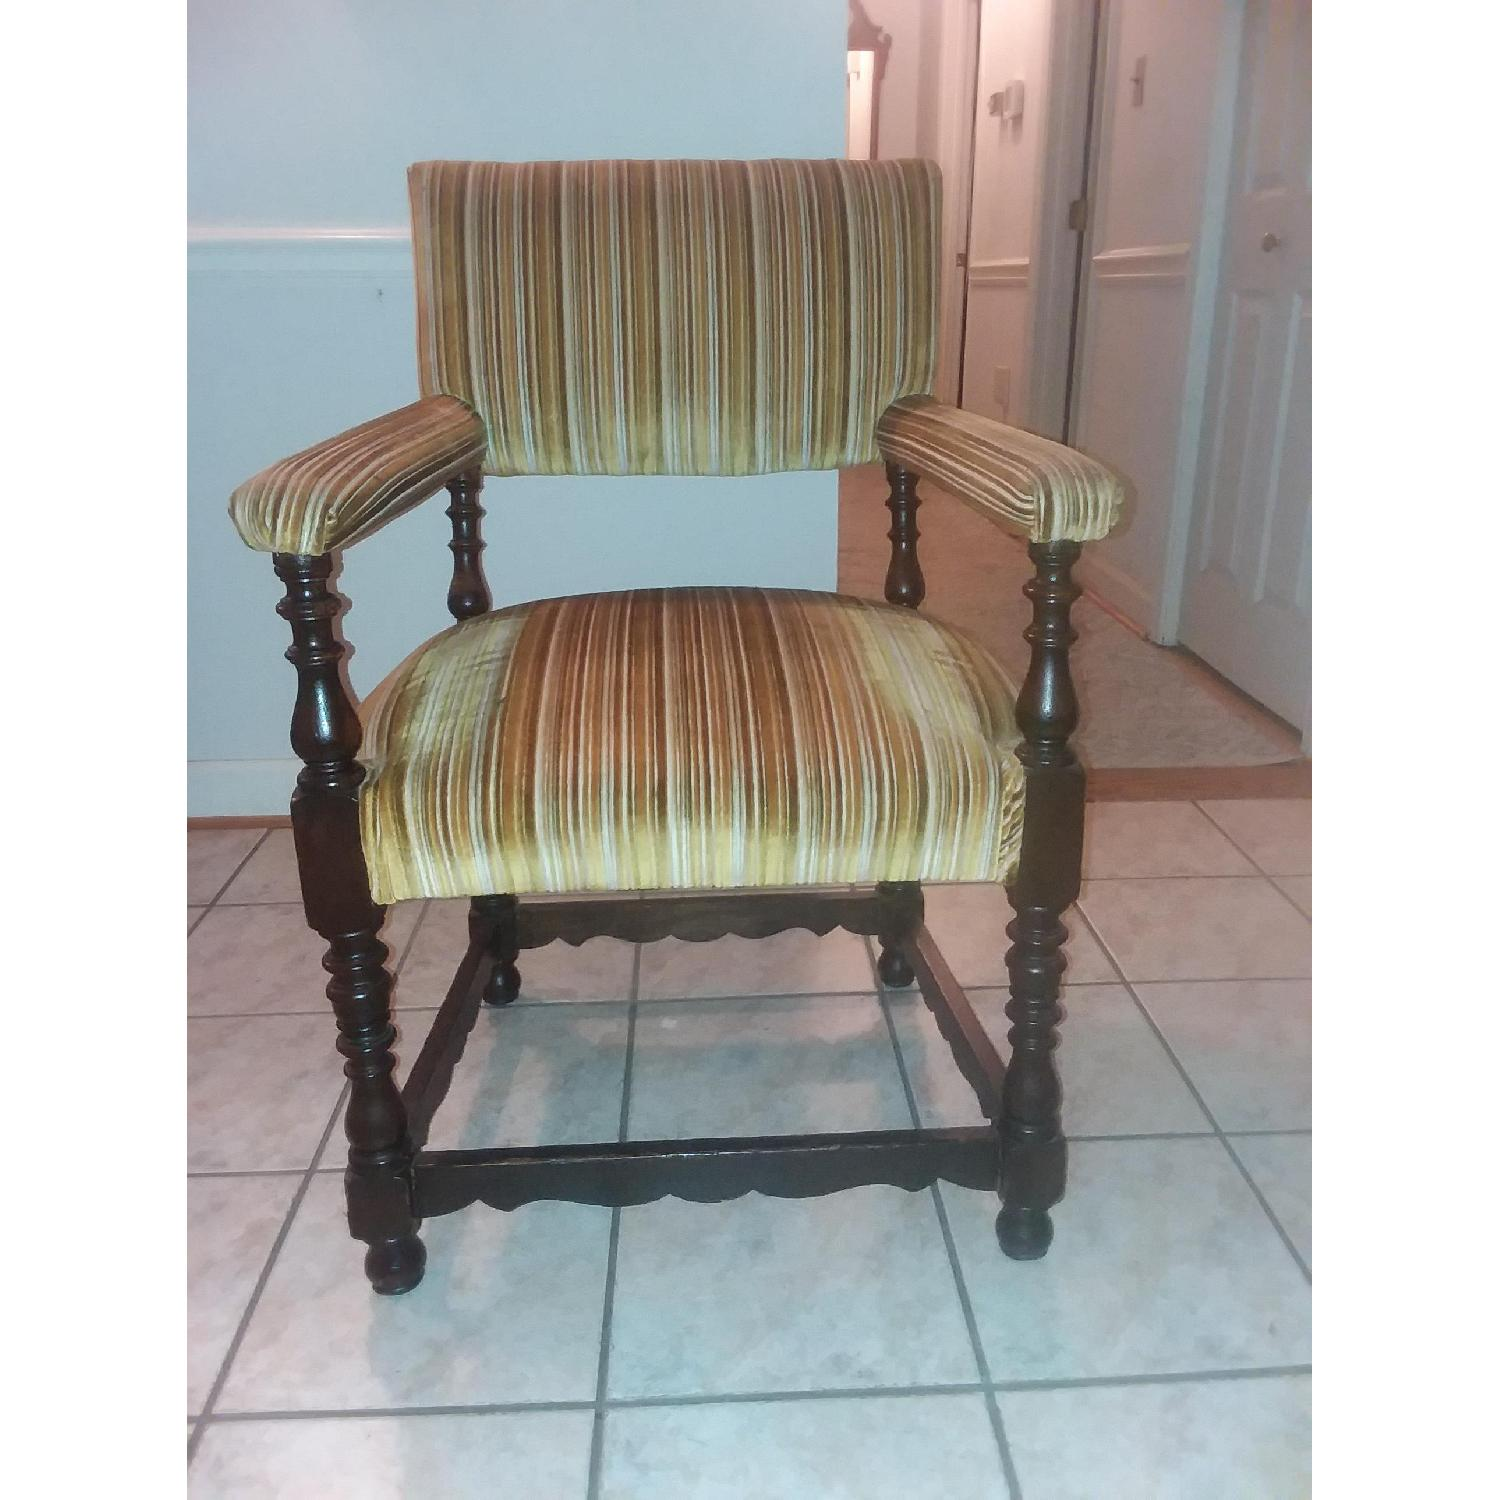 Vintage Provincial Chairs - image-1